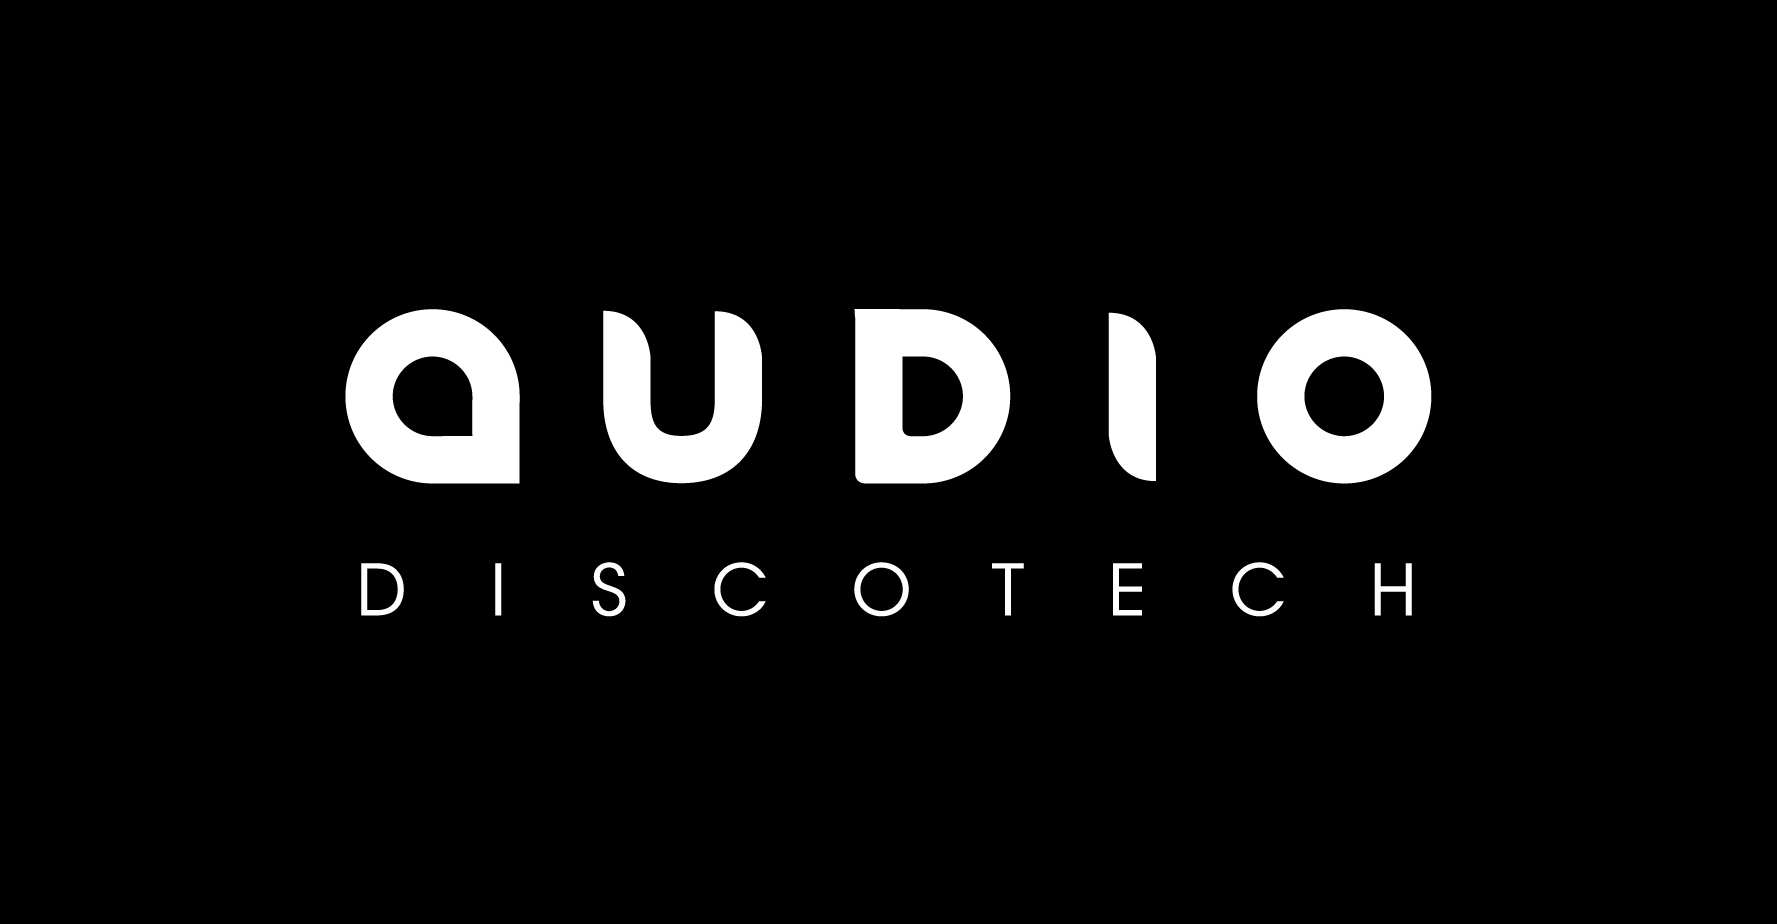 New Nightclub 'Audio Discotech' Prepares for SoMA Debut